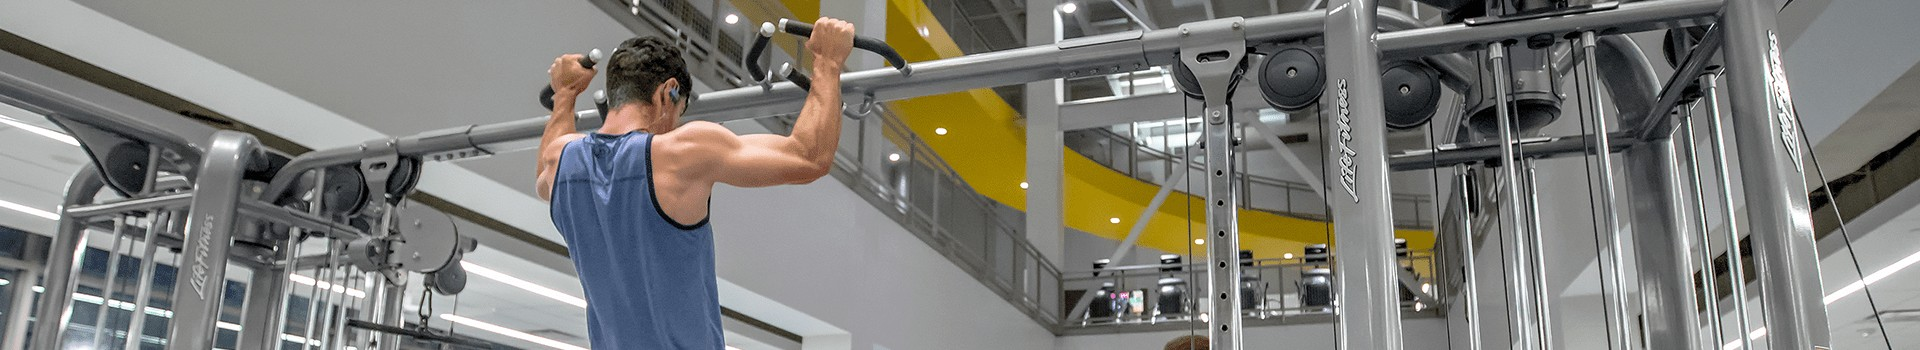 Member doing a pull up